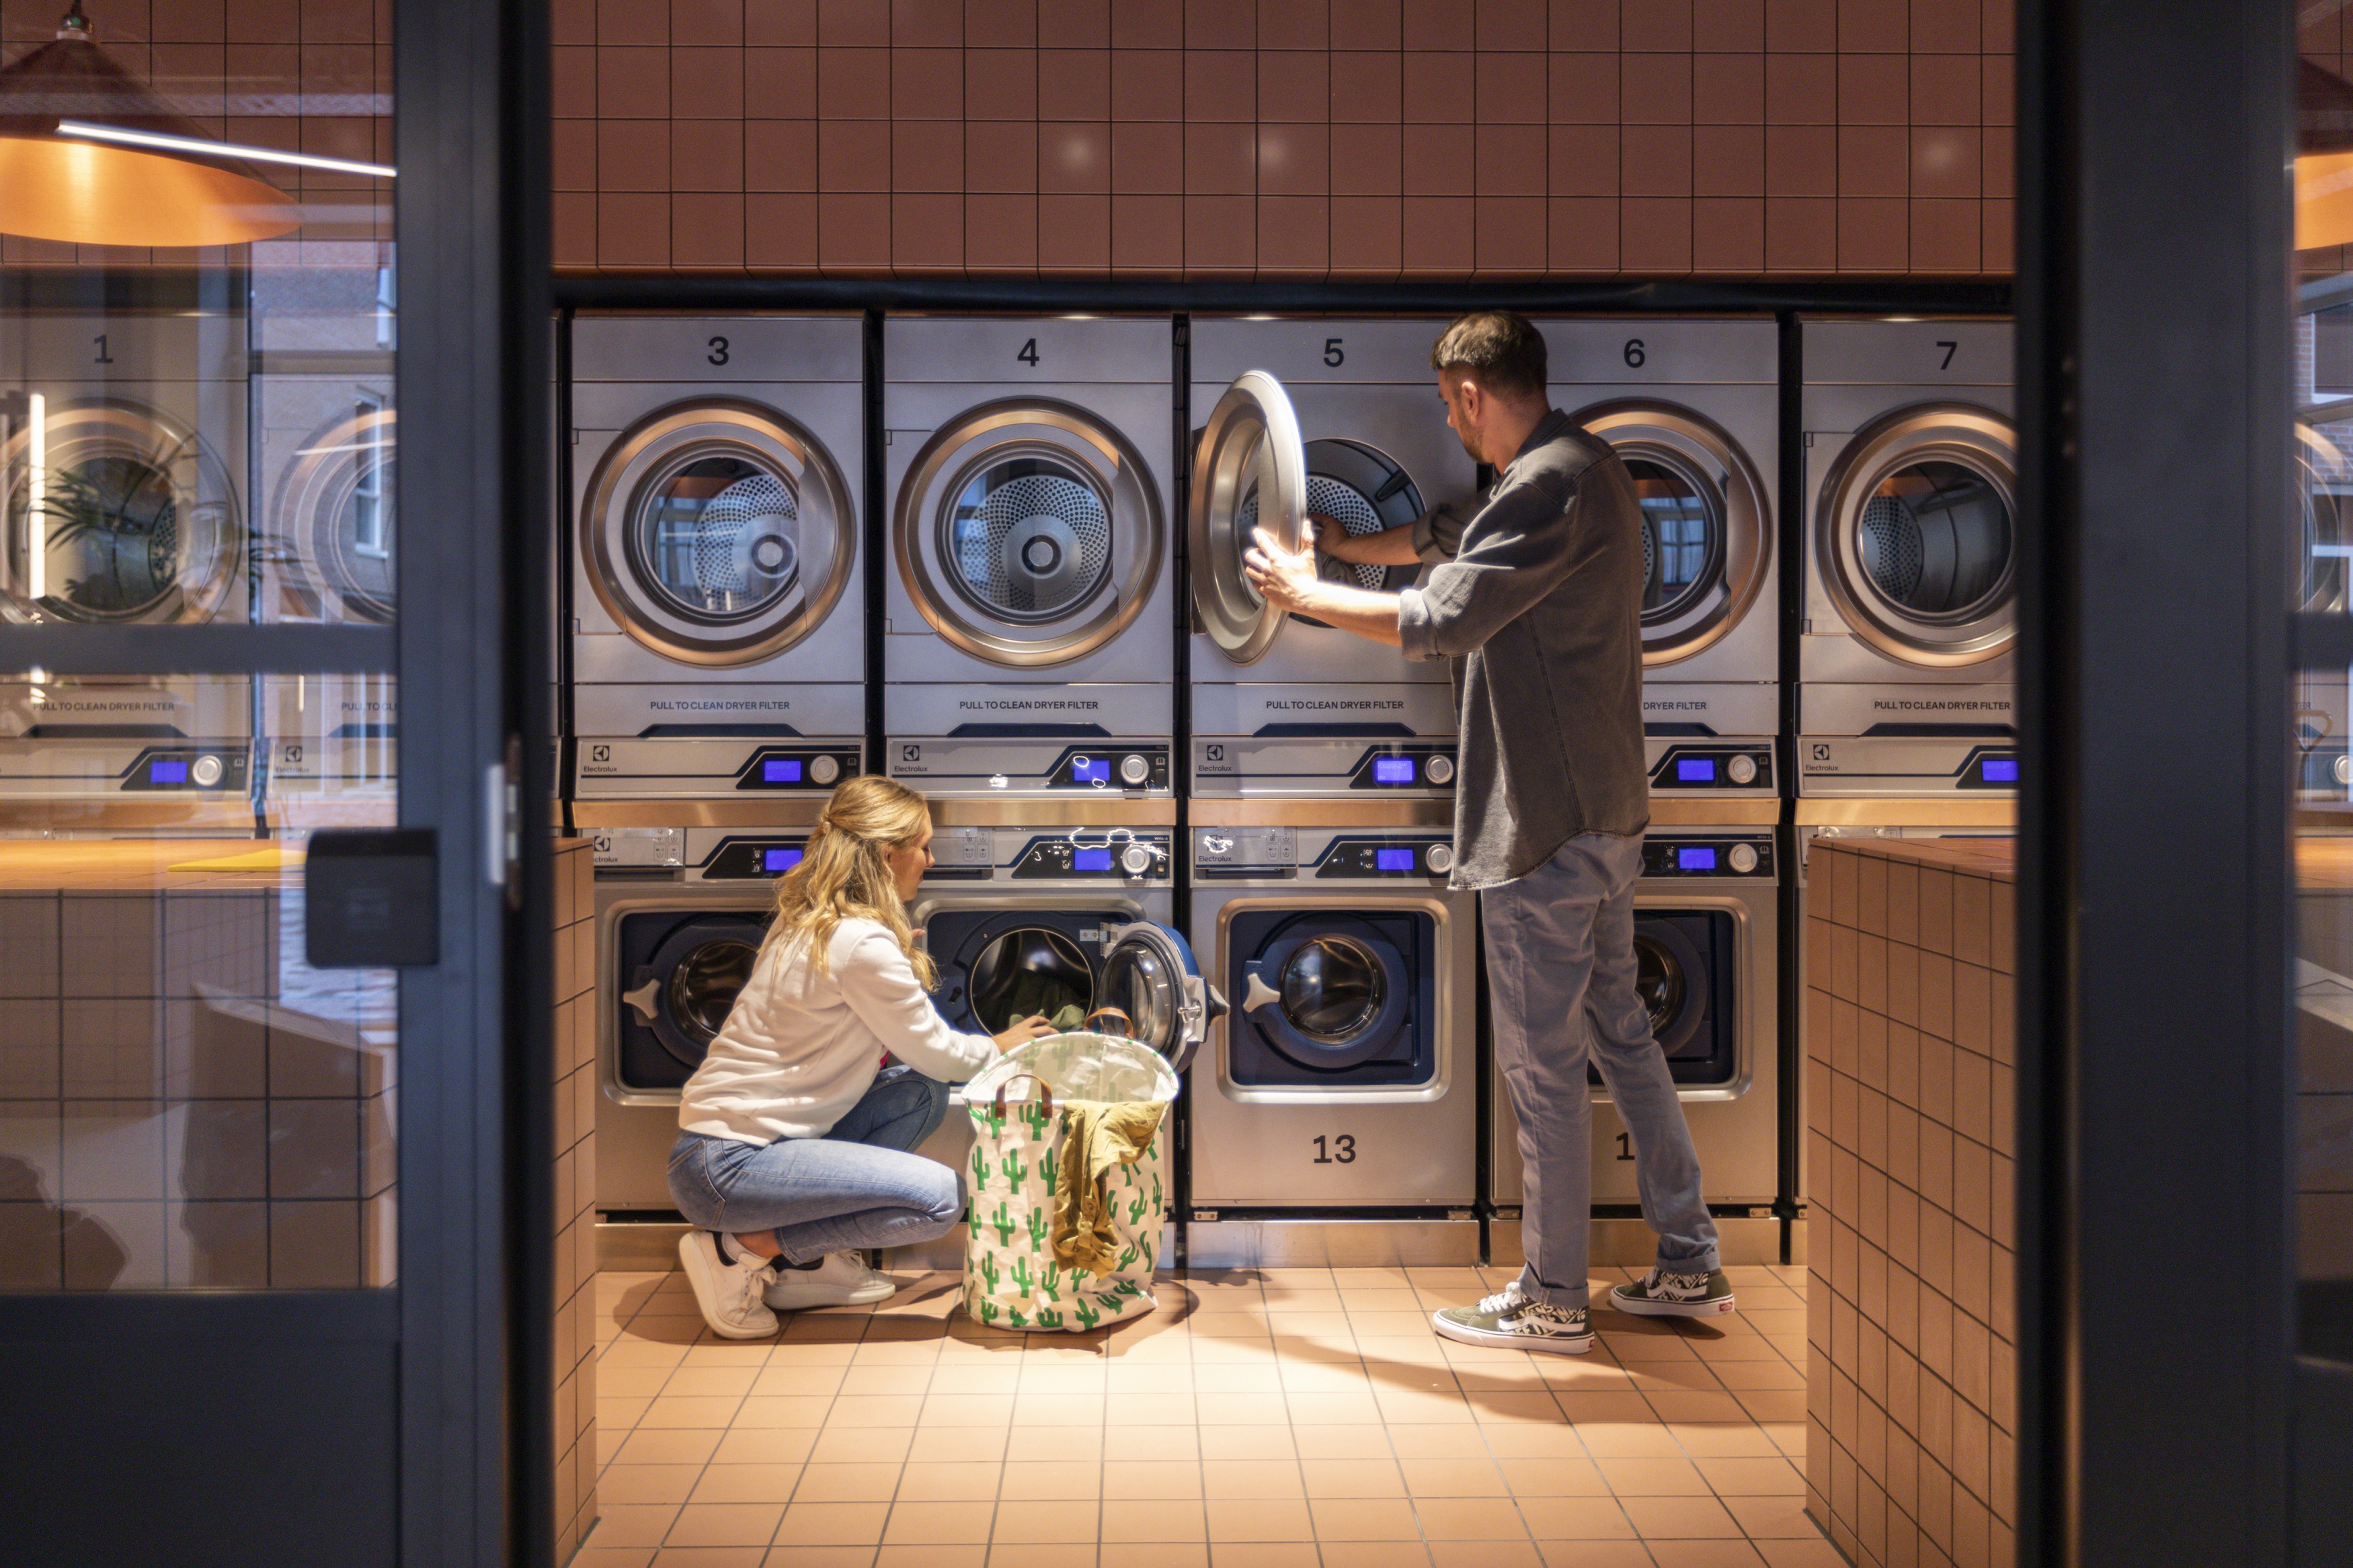 Residents doing their laundry at OurDomain Amsterdam Diemen